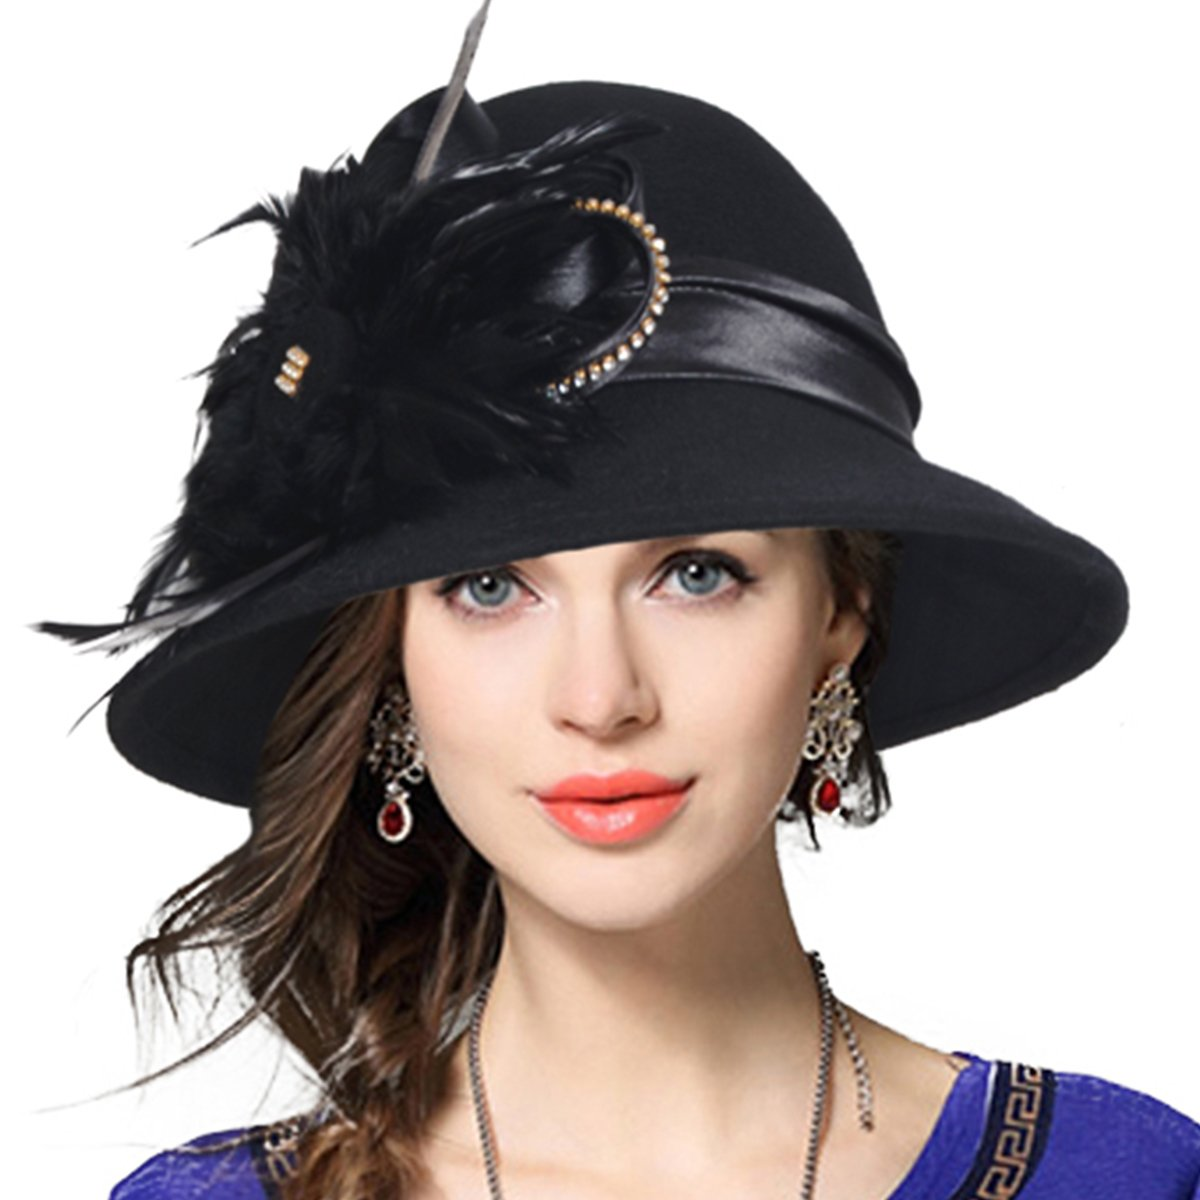 VECRY Women s Wool Church Dress Cloche Hat Plumy Felt Bucket Winter Hat  (Black) at Amazon Women s Clothing store  b1a99faf8d6